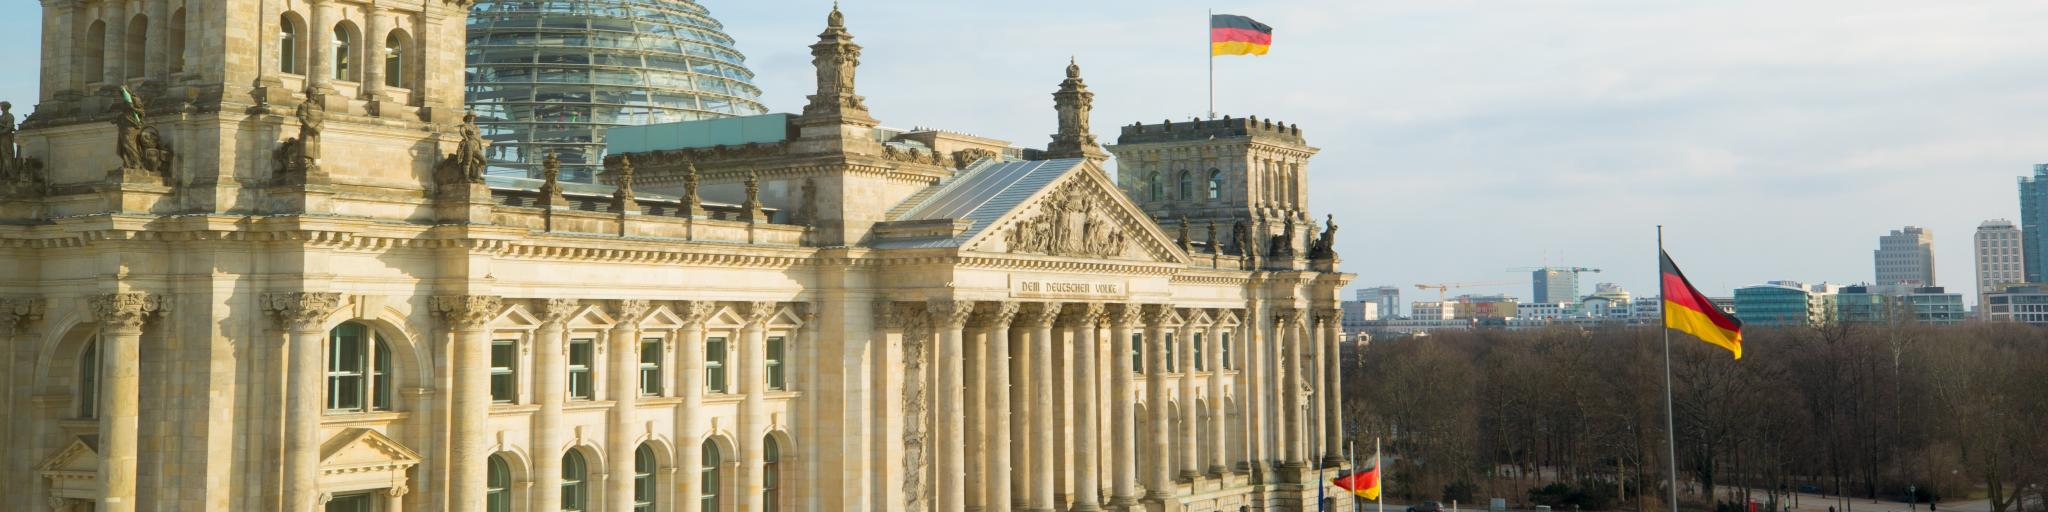 The front facade of the Bundestag building, with German flags in front of it